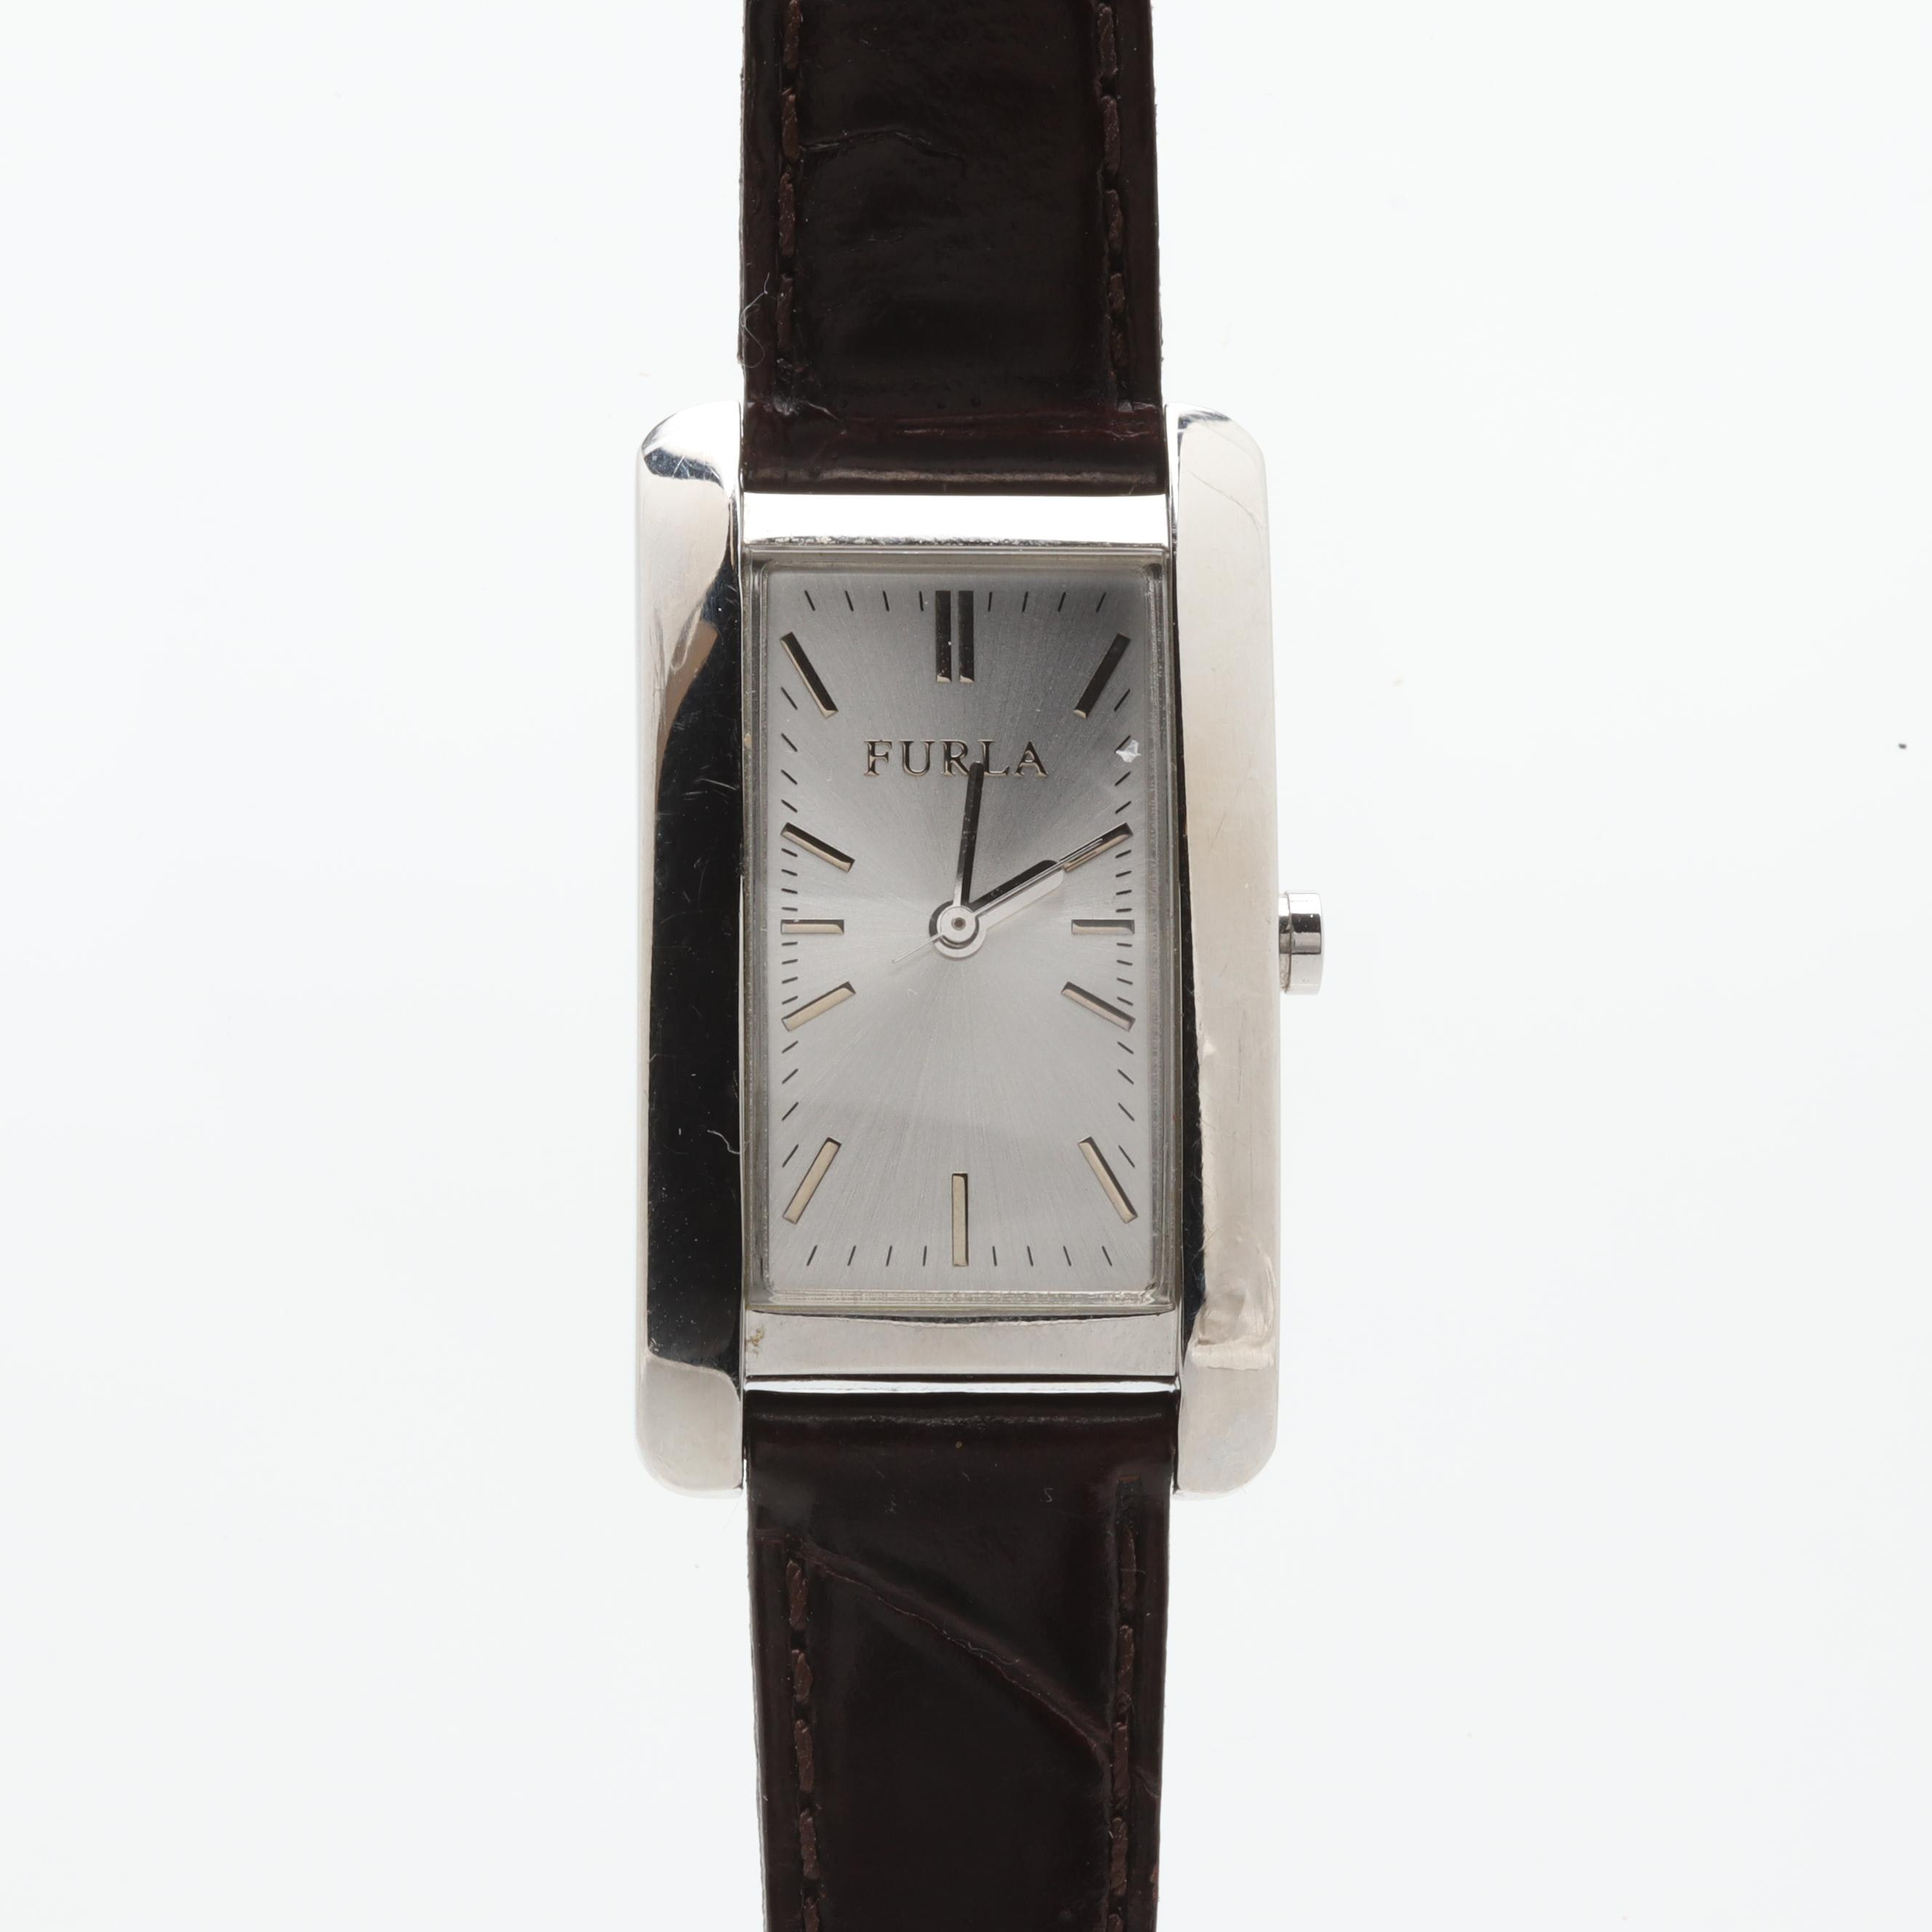 Furla Stainless Steel Wristwatch with Black Leather Strap